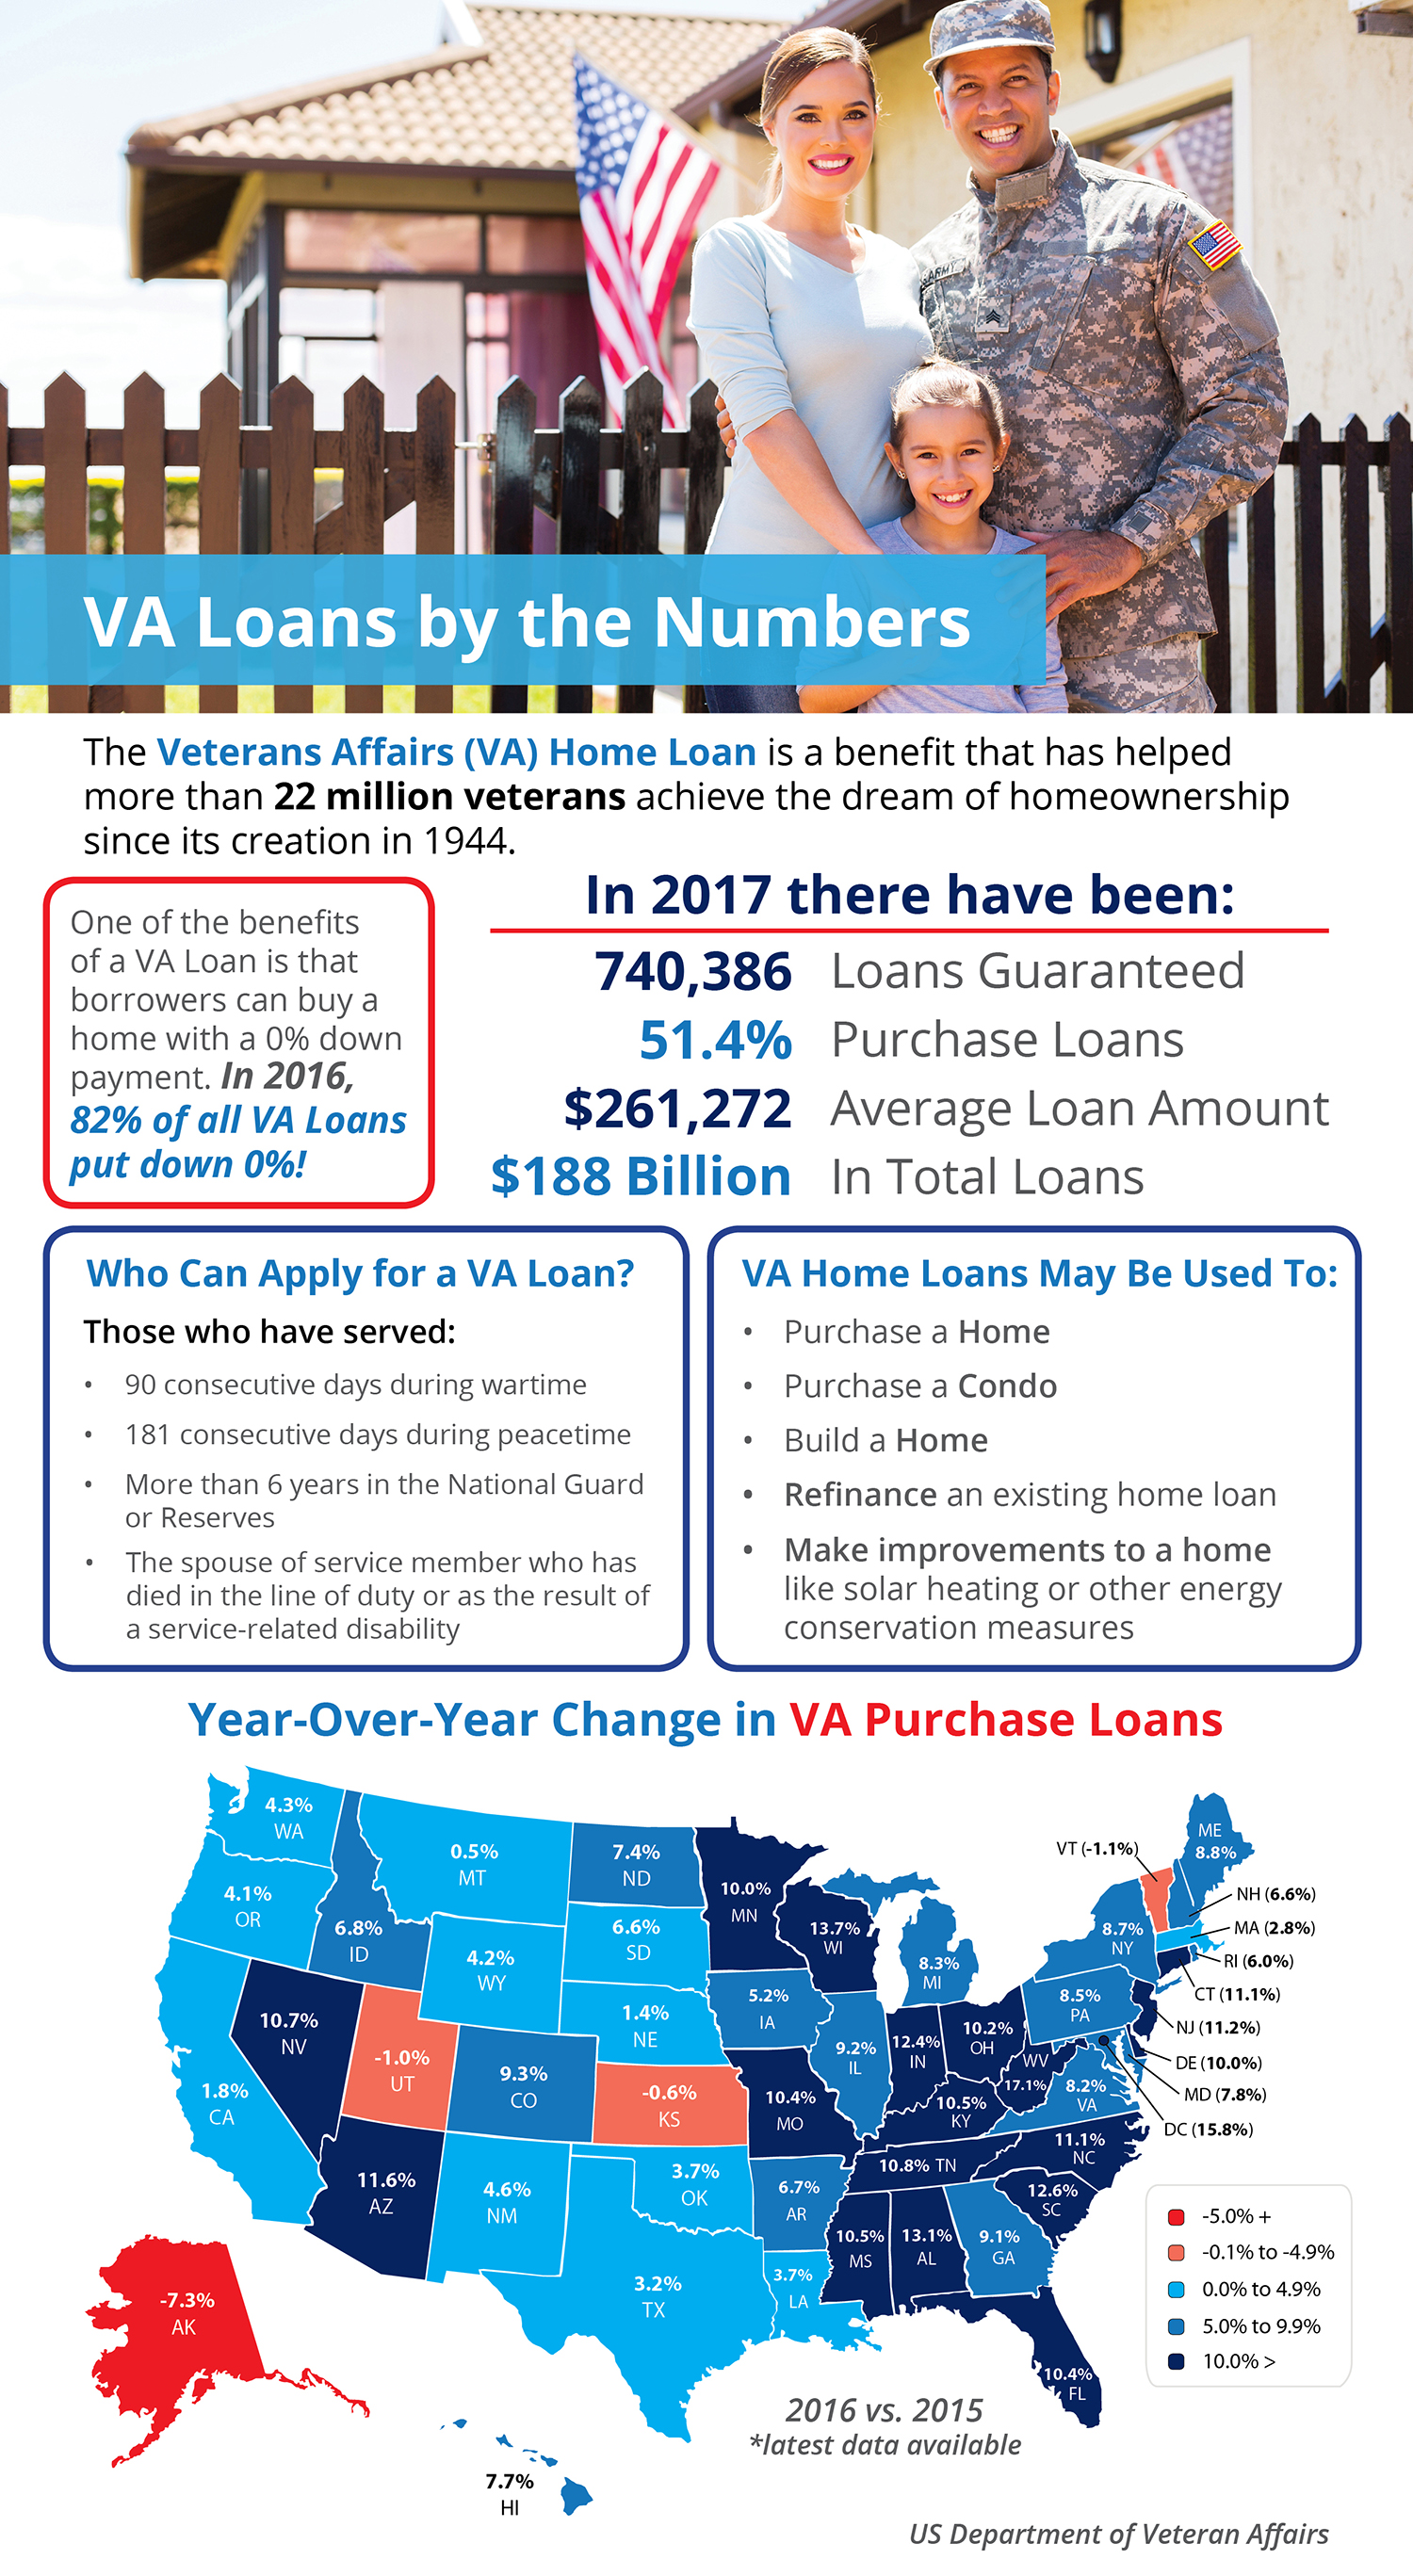 VA Loans are One of the Greatest Benefits Our Country Provides for Veterans